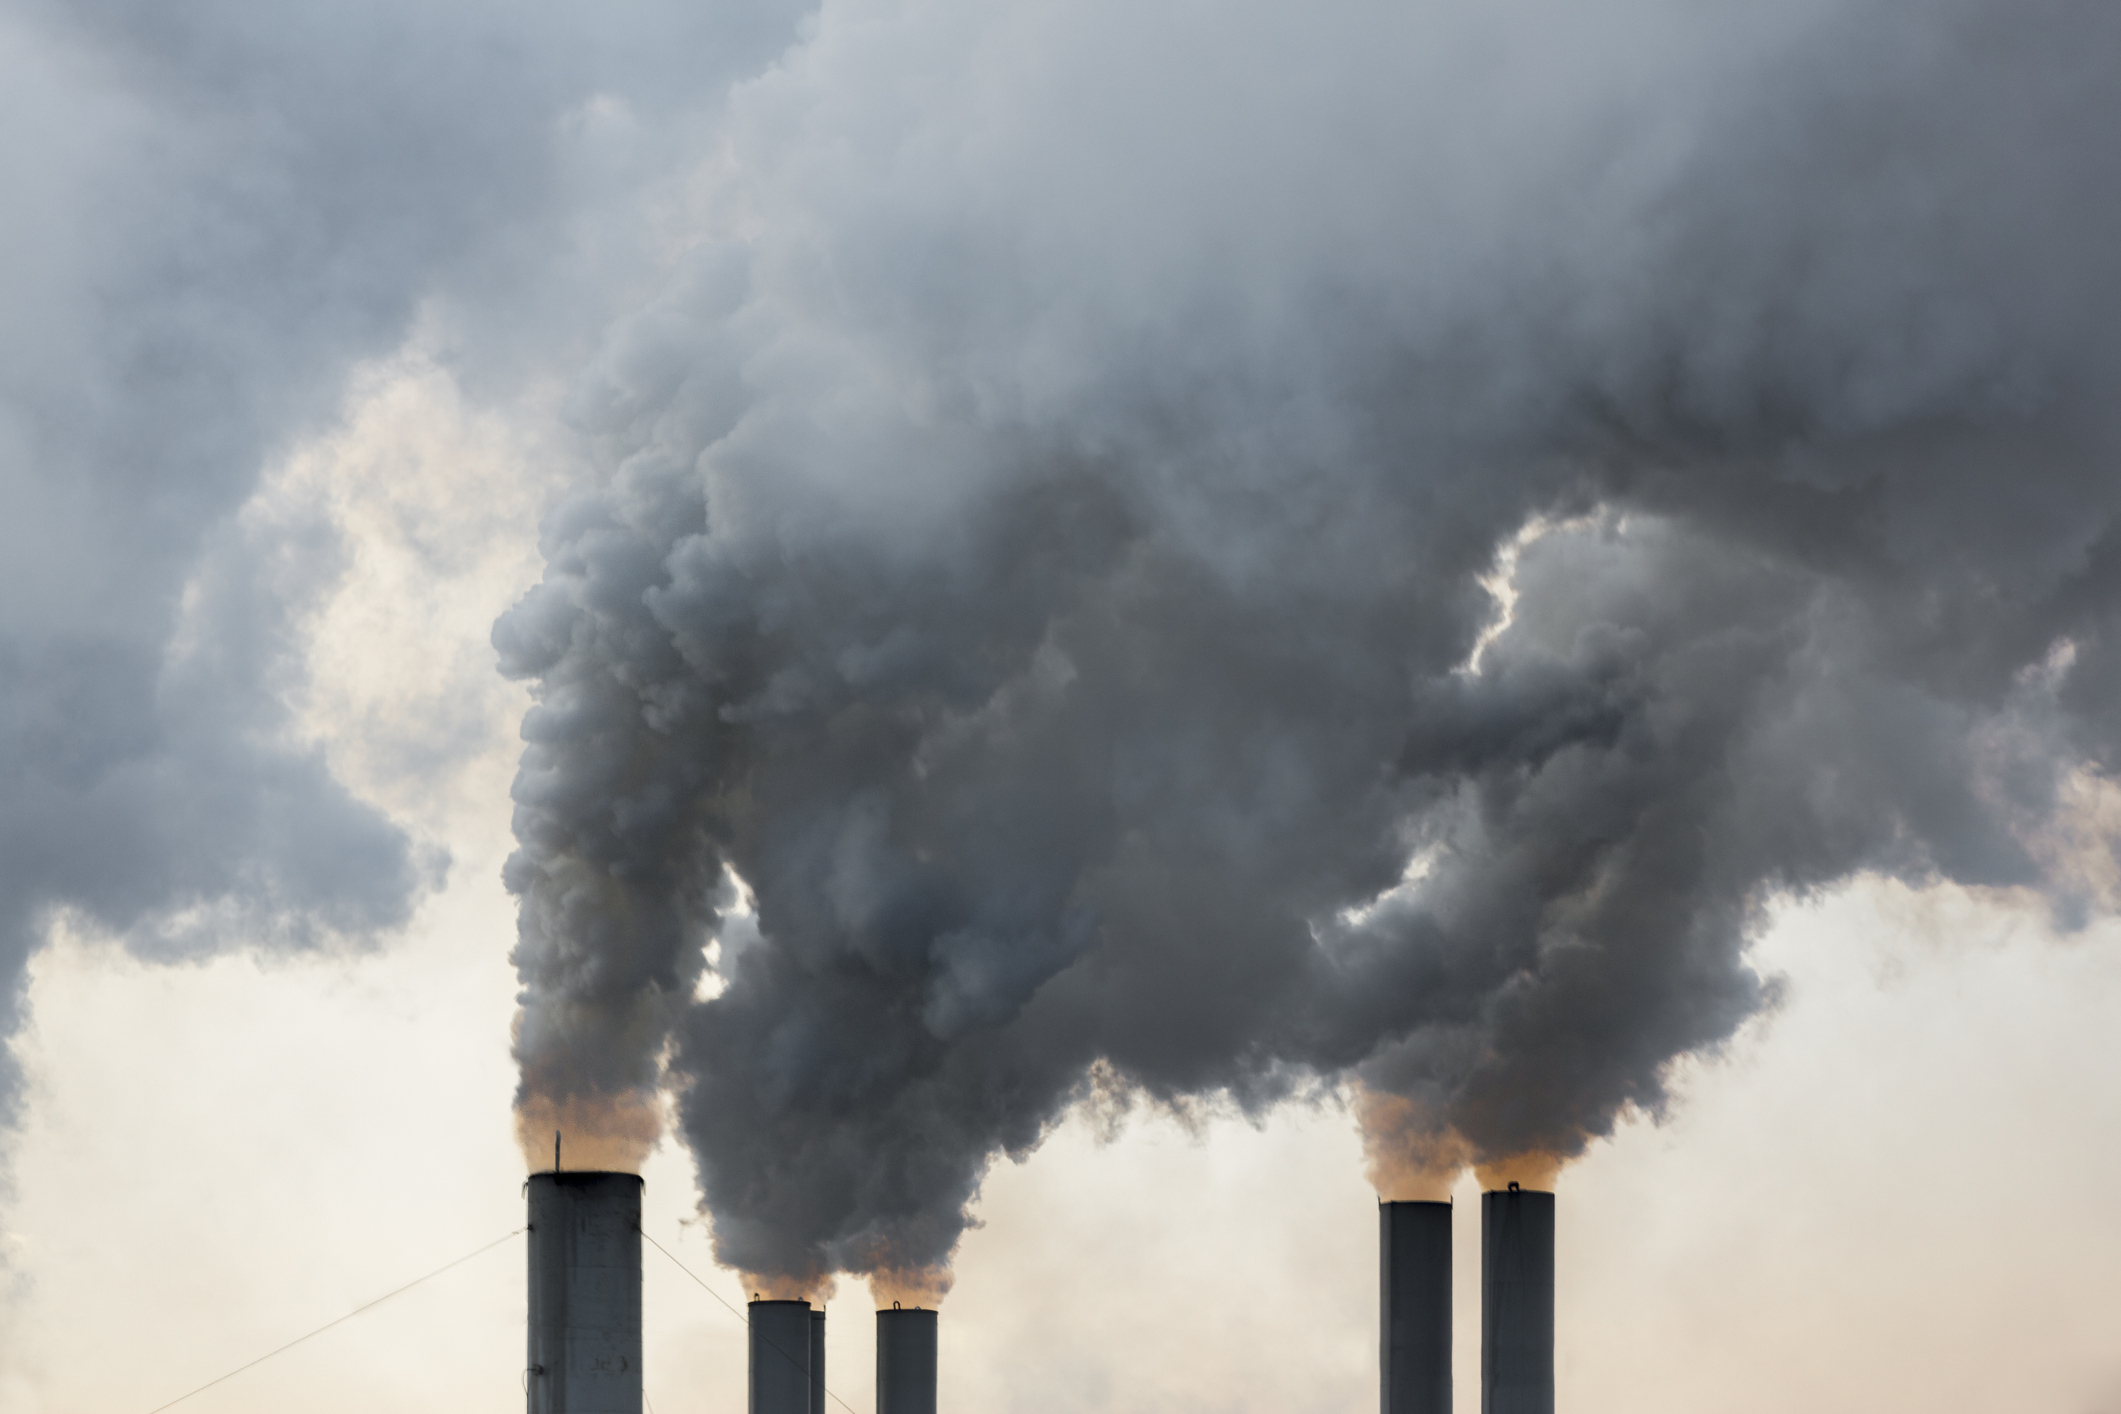 Article image for 'Untold suffering': 11,000 scientists declare climate emergency, call for 'massive changes' to energy production